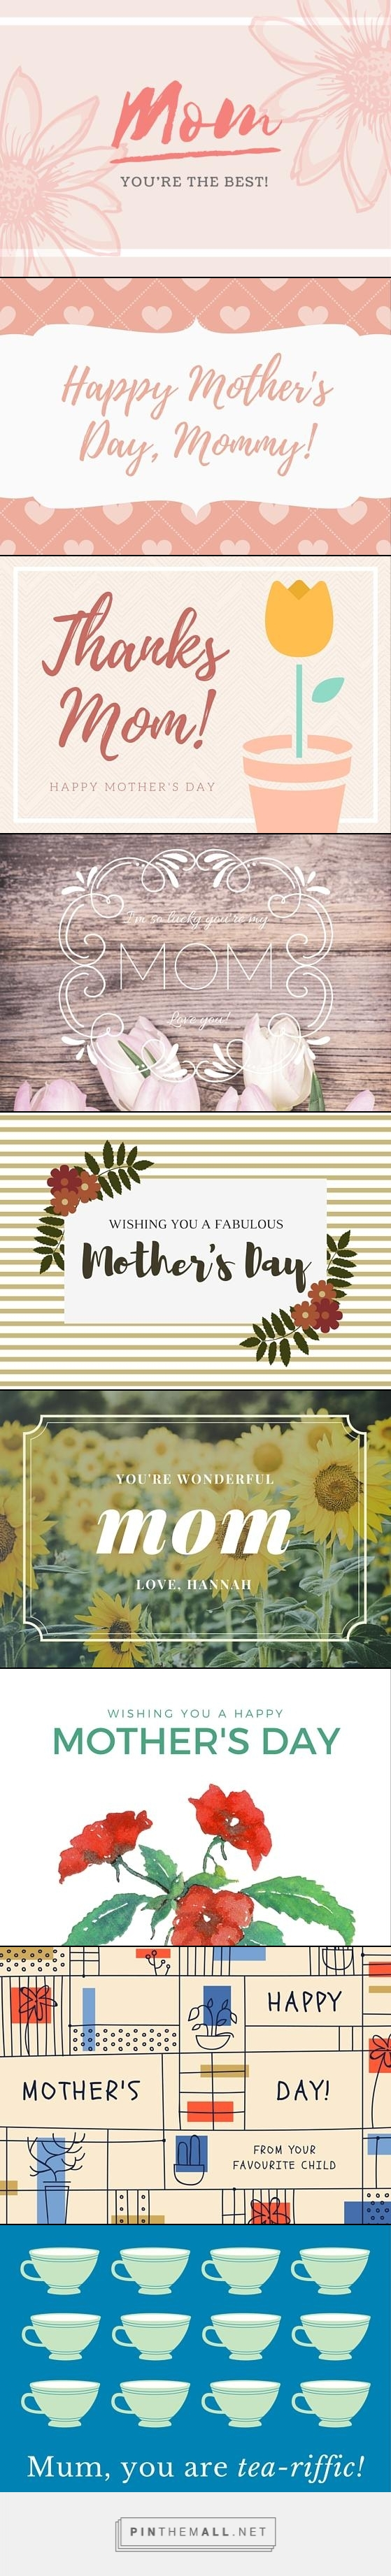 New To Canva Sign Up Printing Business Cards Graphic Design Software Happy Mothers Day